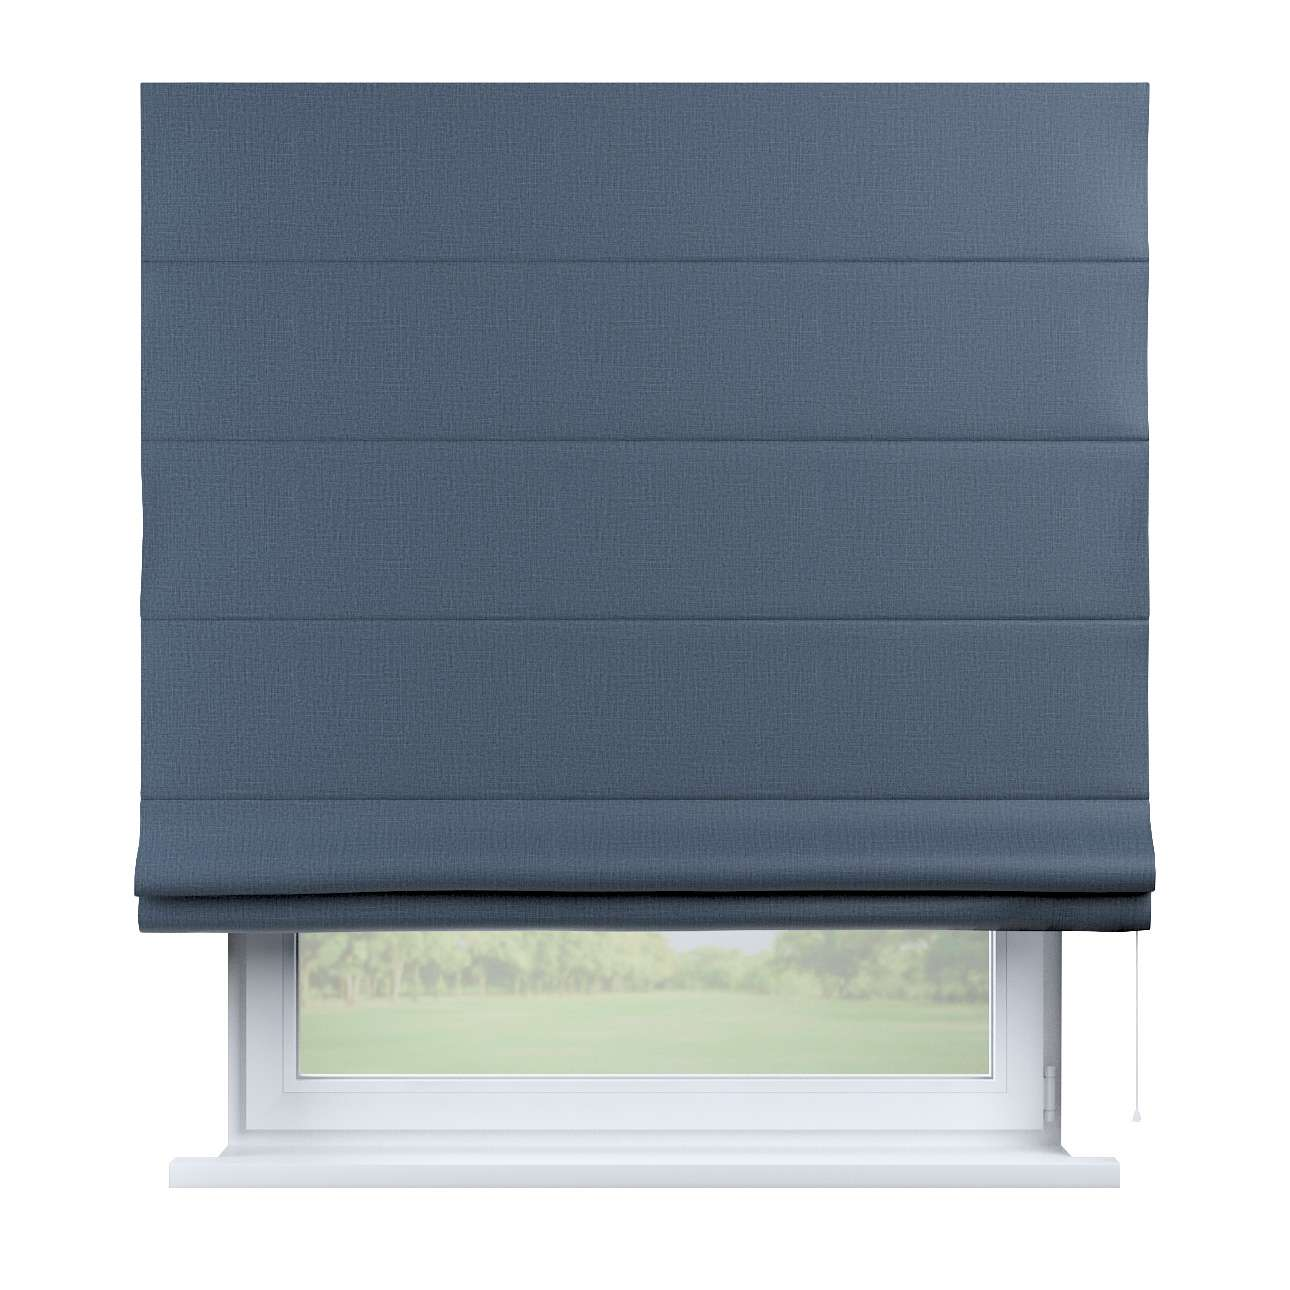 Blackout roman blind in collection Blackout, fabric: 269-67